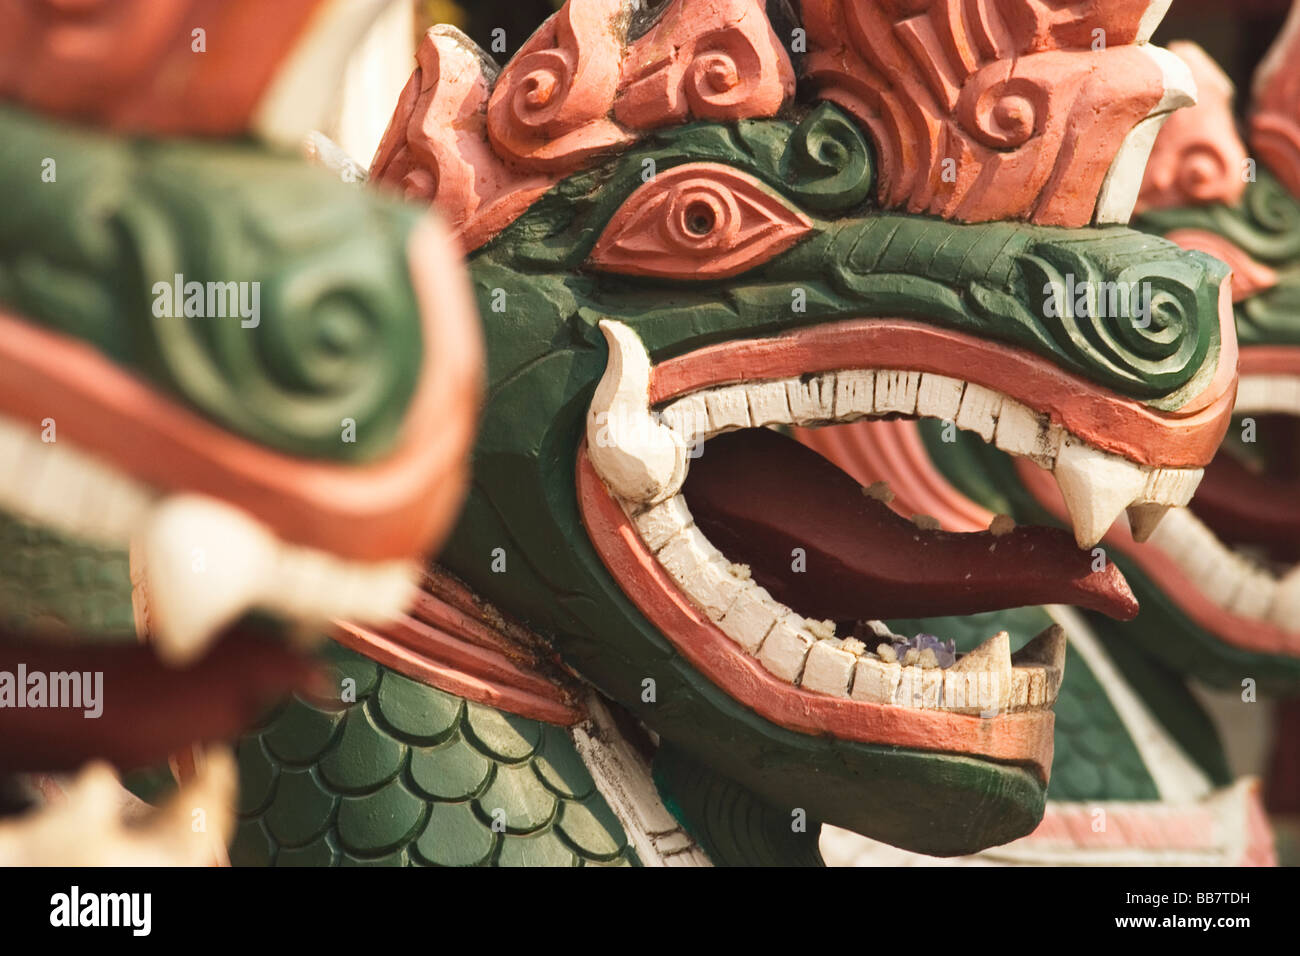 Dragon-like creatures guard the temple buildings of Wat Luang in Pakse, Lao People's Democratic Republic. - Stock Image